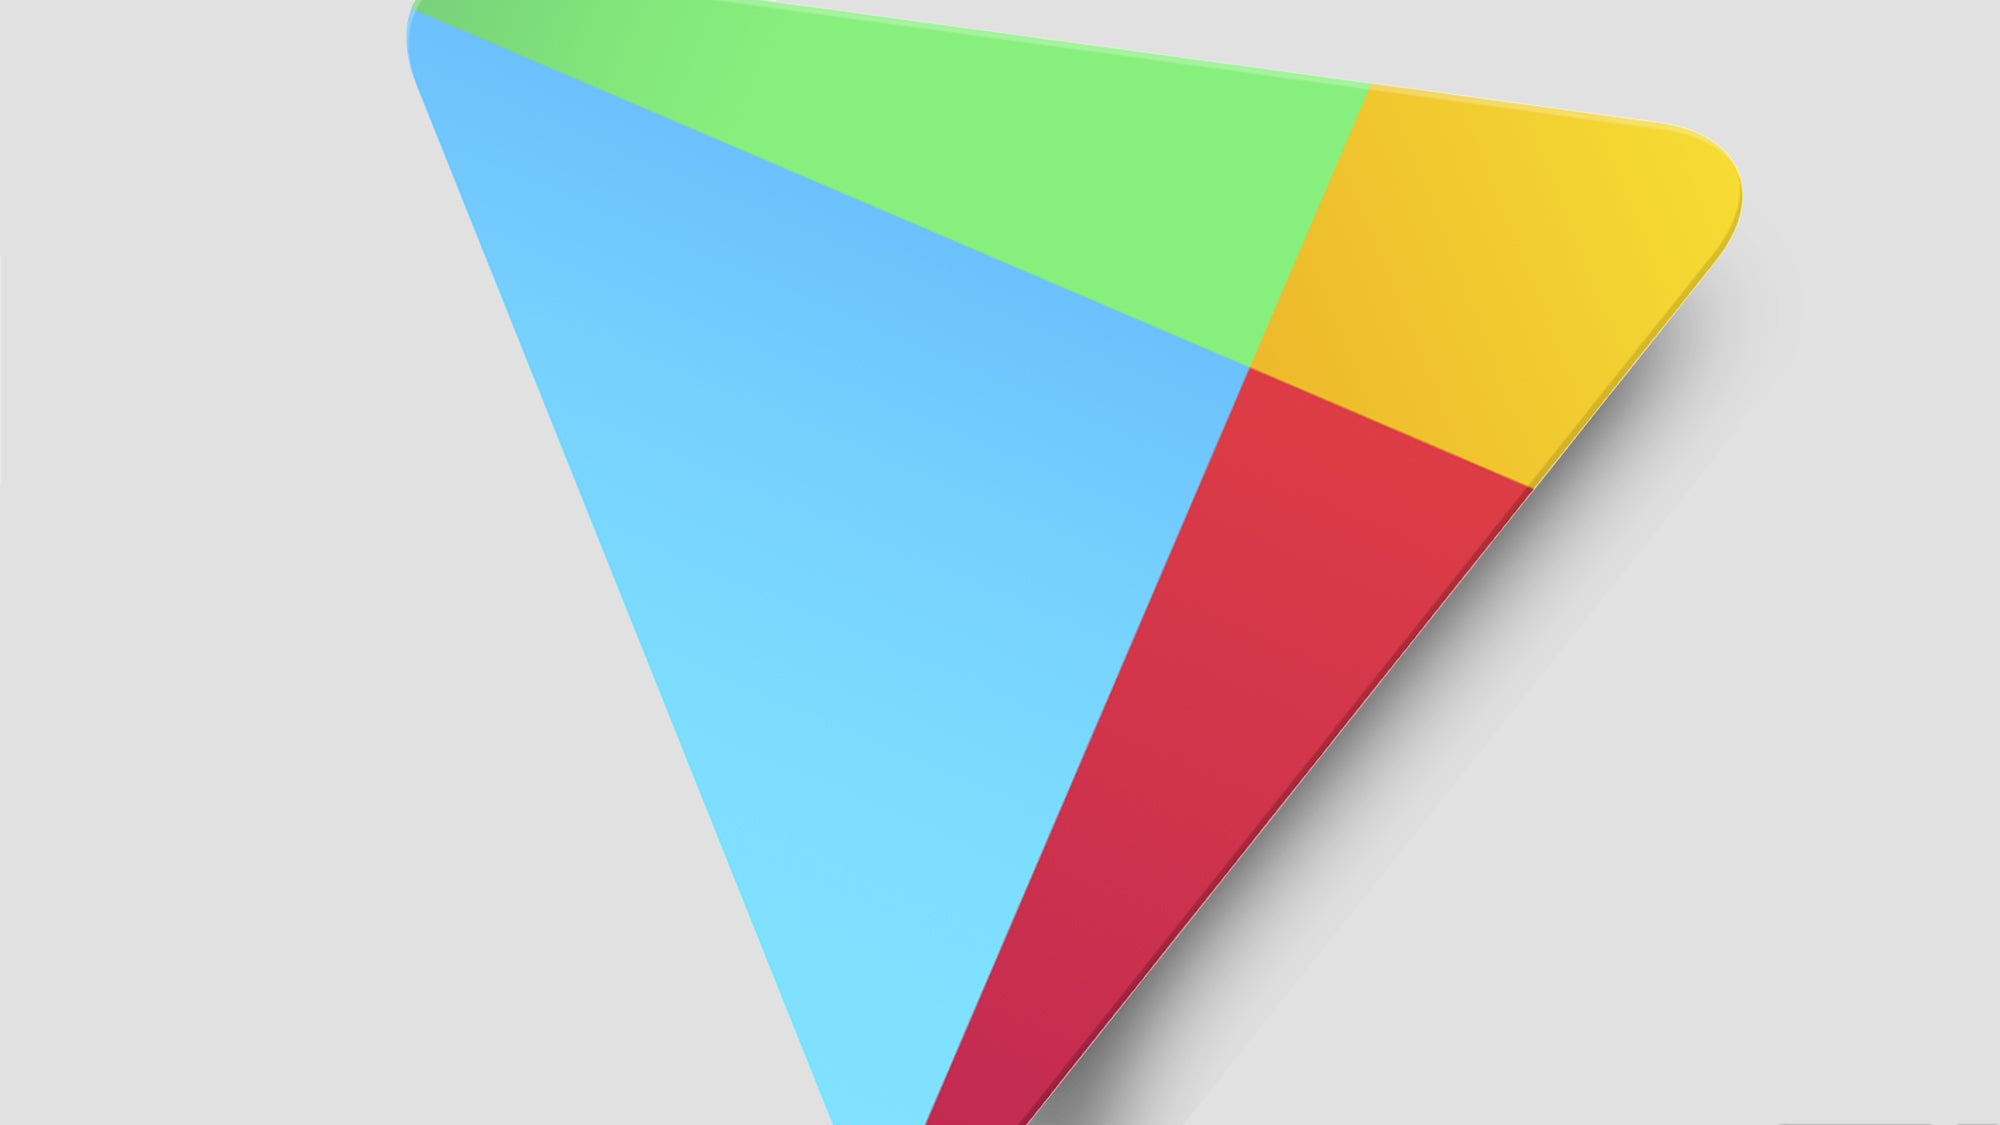 Google deletes 20 apps that spied on users from its Play Store | Trusted Reviews